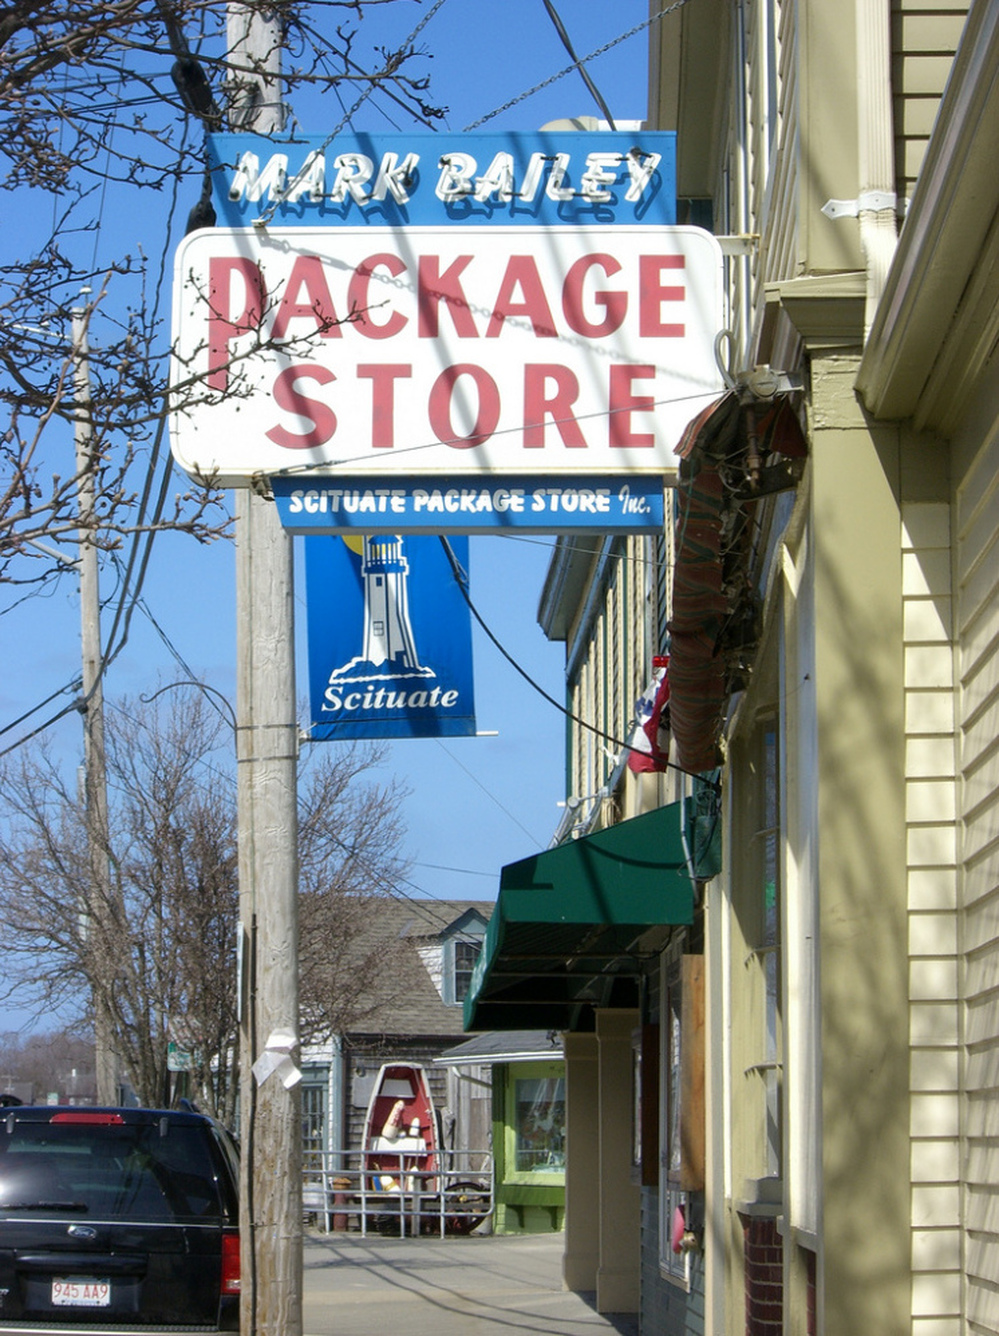 A package store in Scituate, Mass.